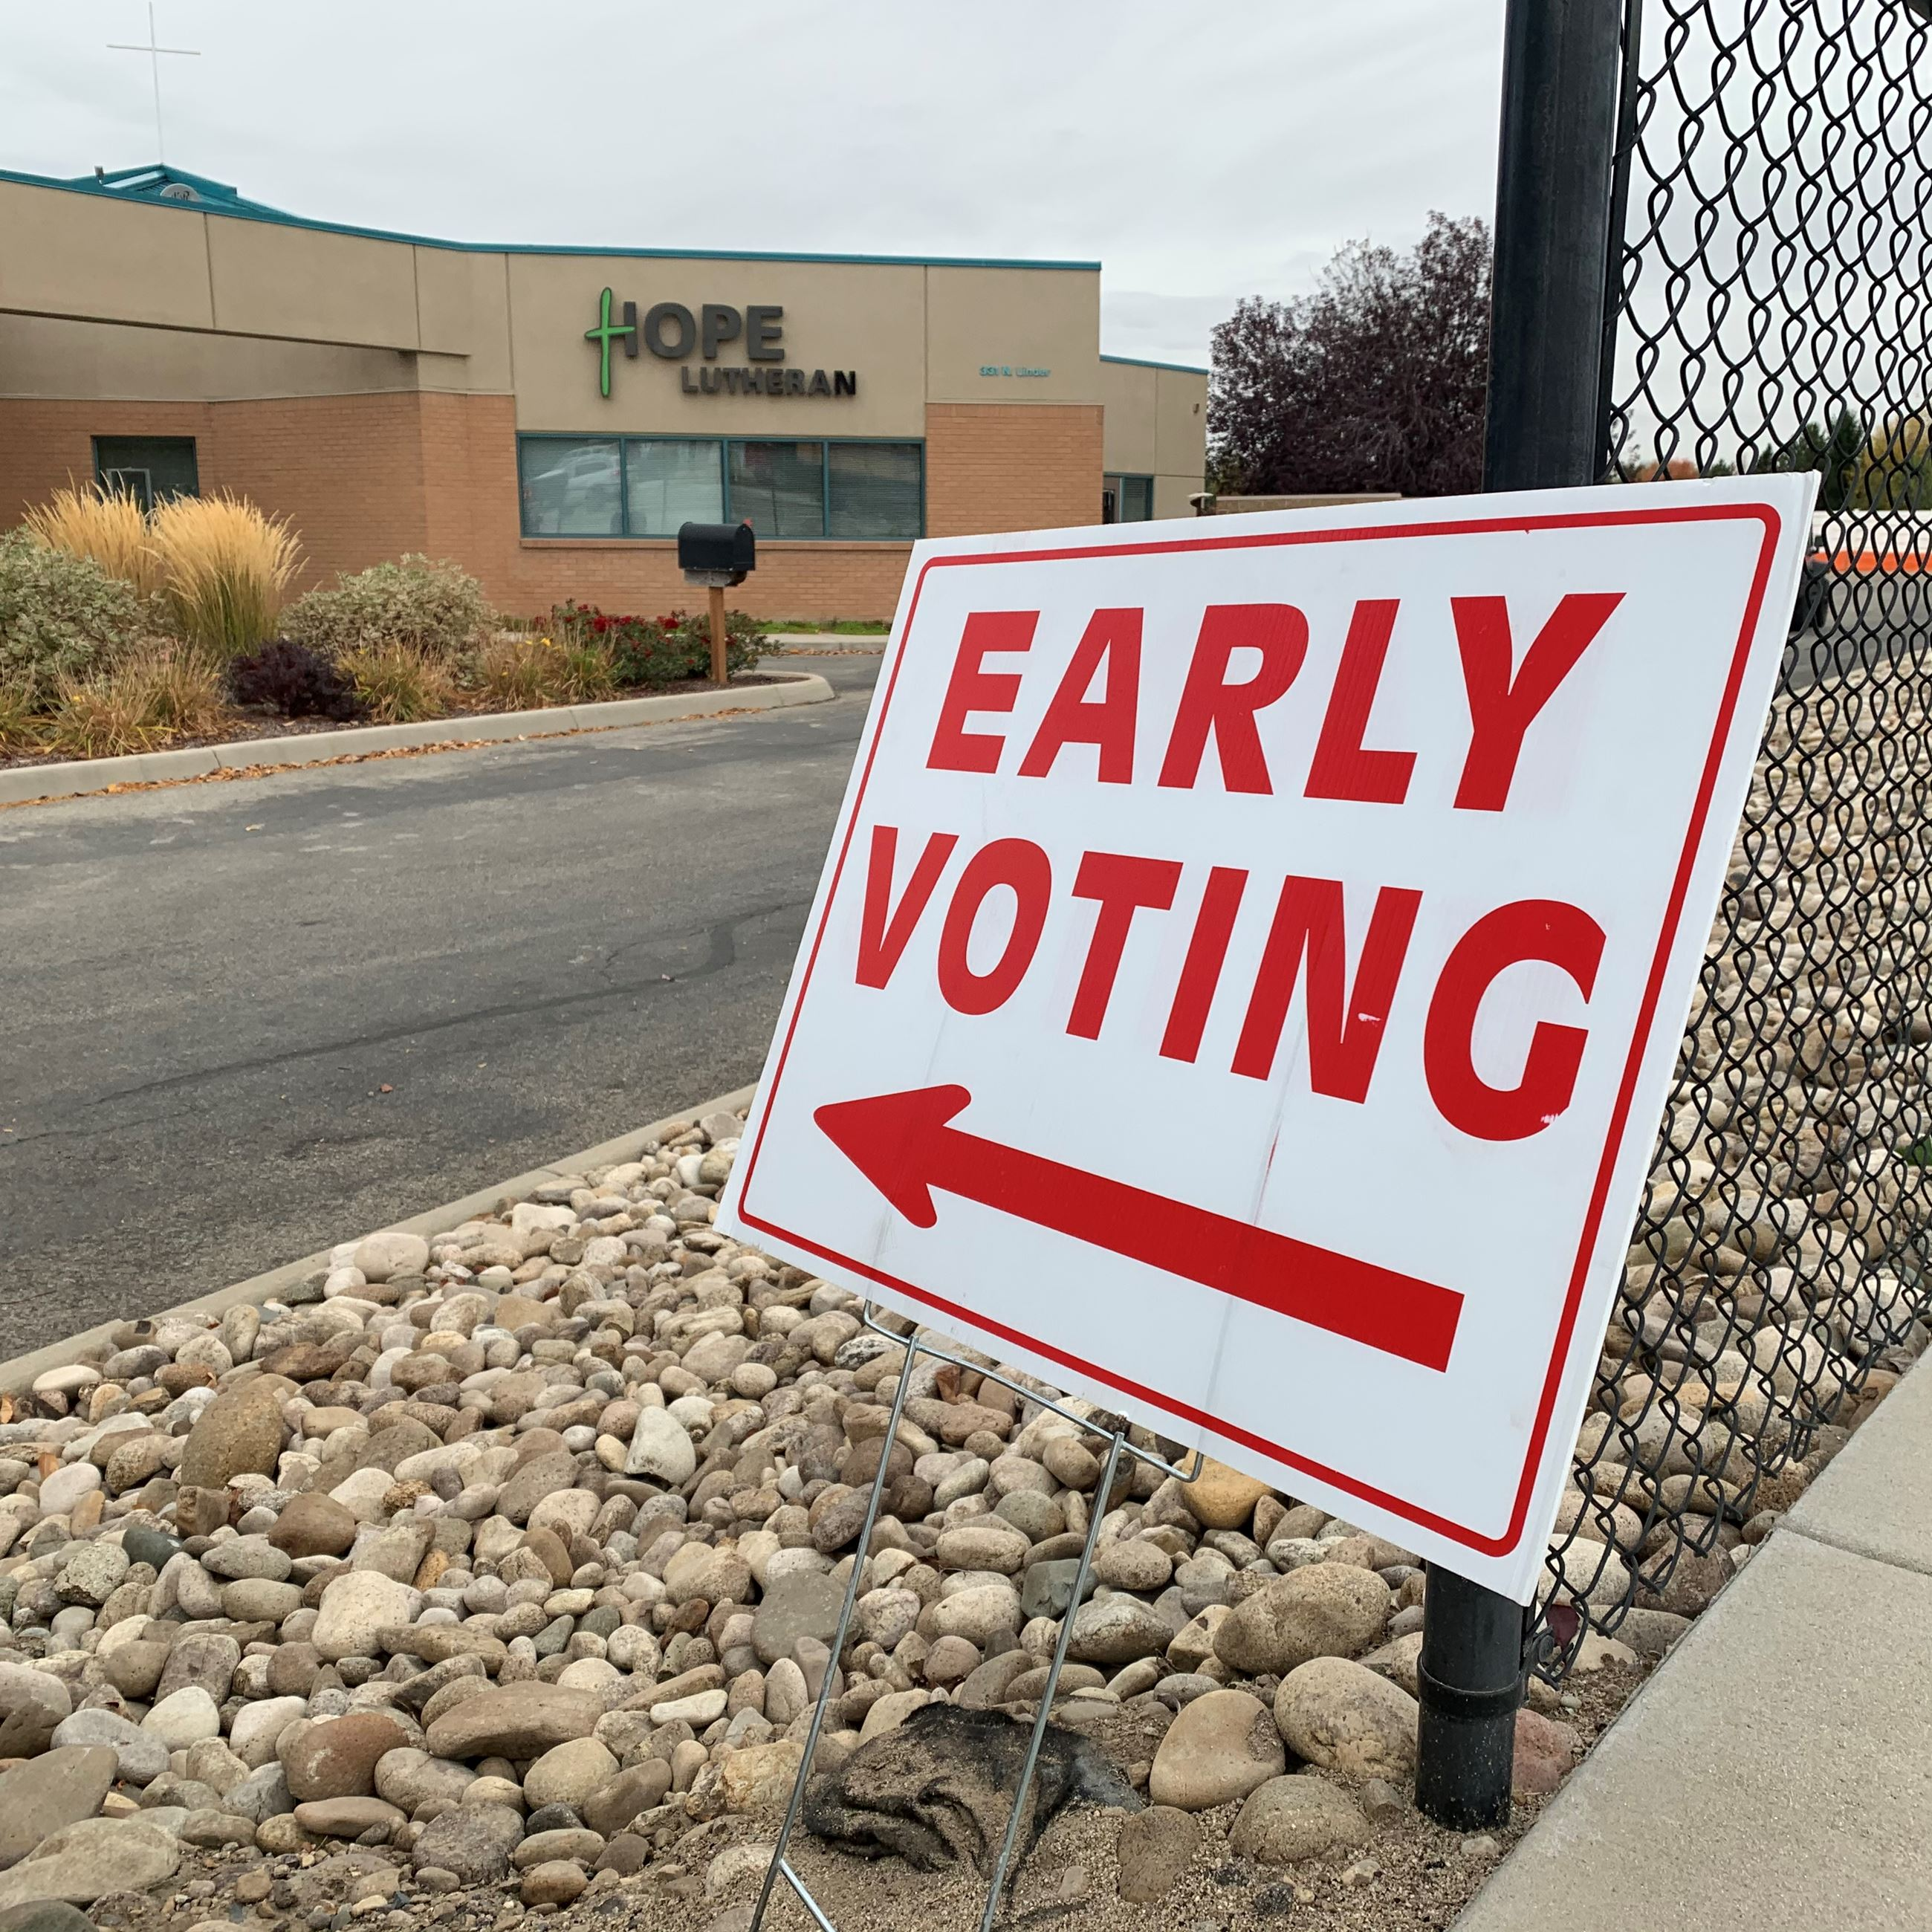 An Early Voting sign points at the Eagle Hope Lutheran Church Building.